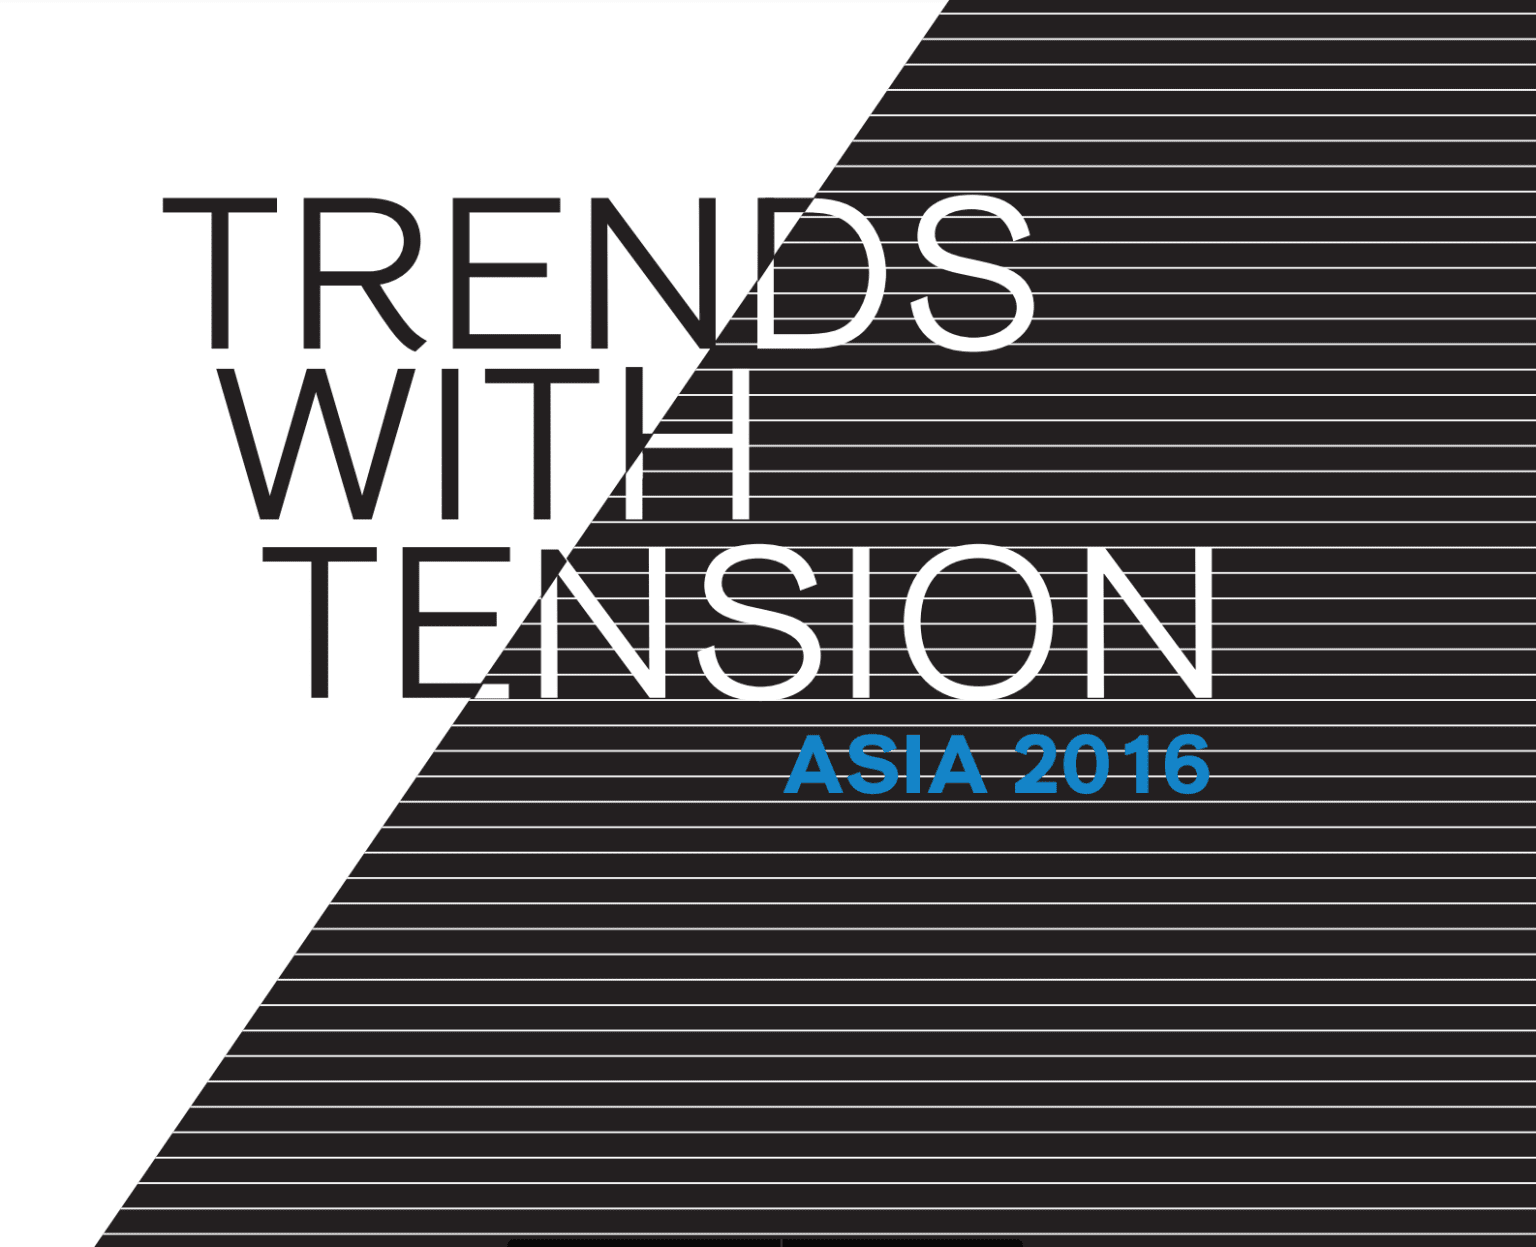 Trends with Tension Asia 2016